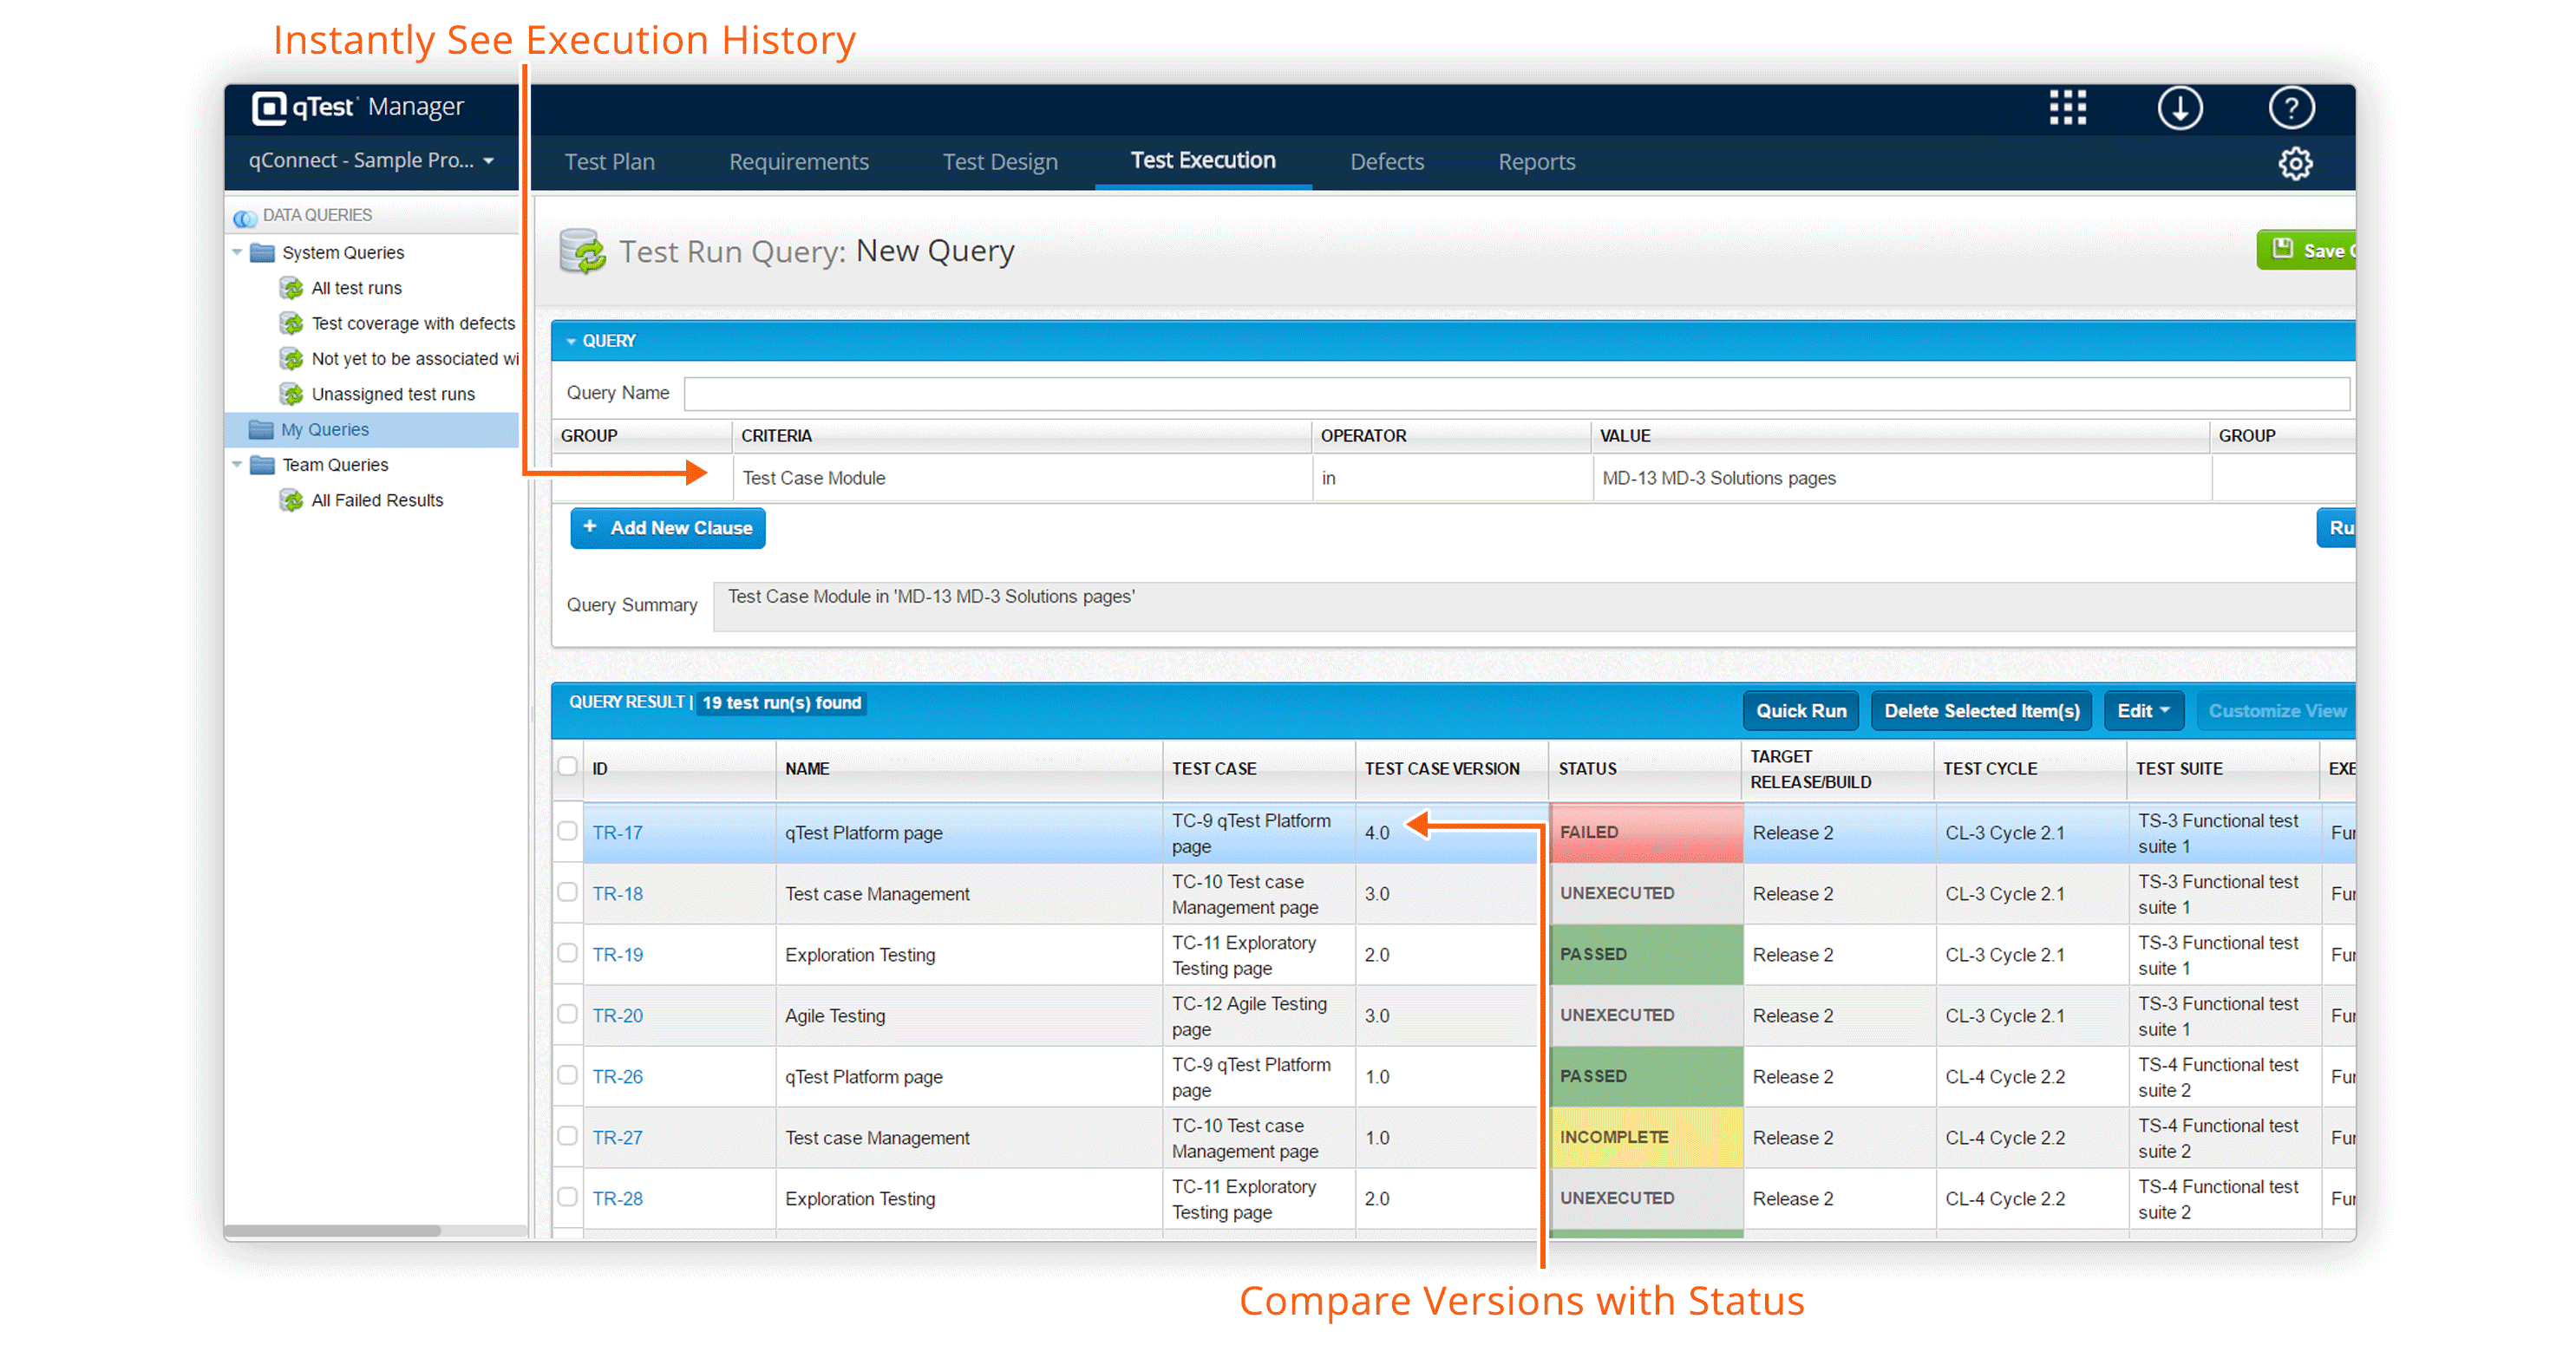 View test case execution history for each test case version in qTest Manager